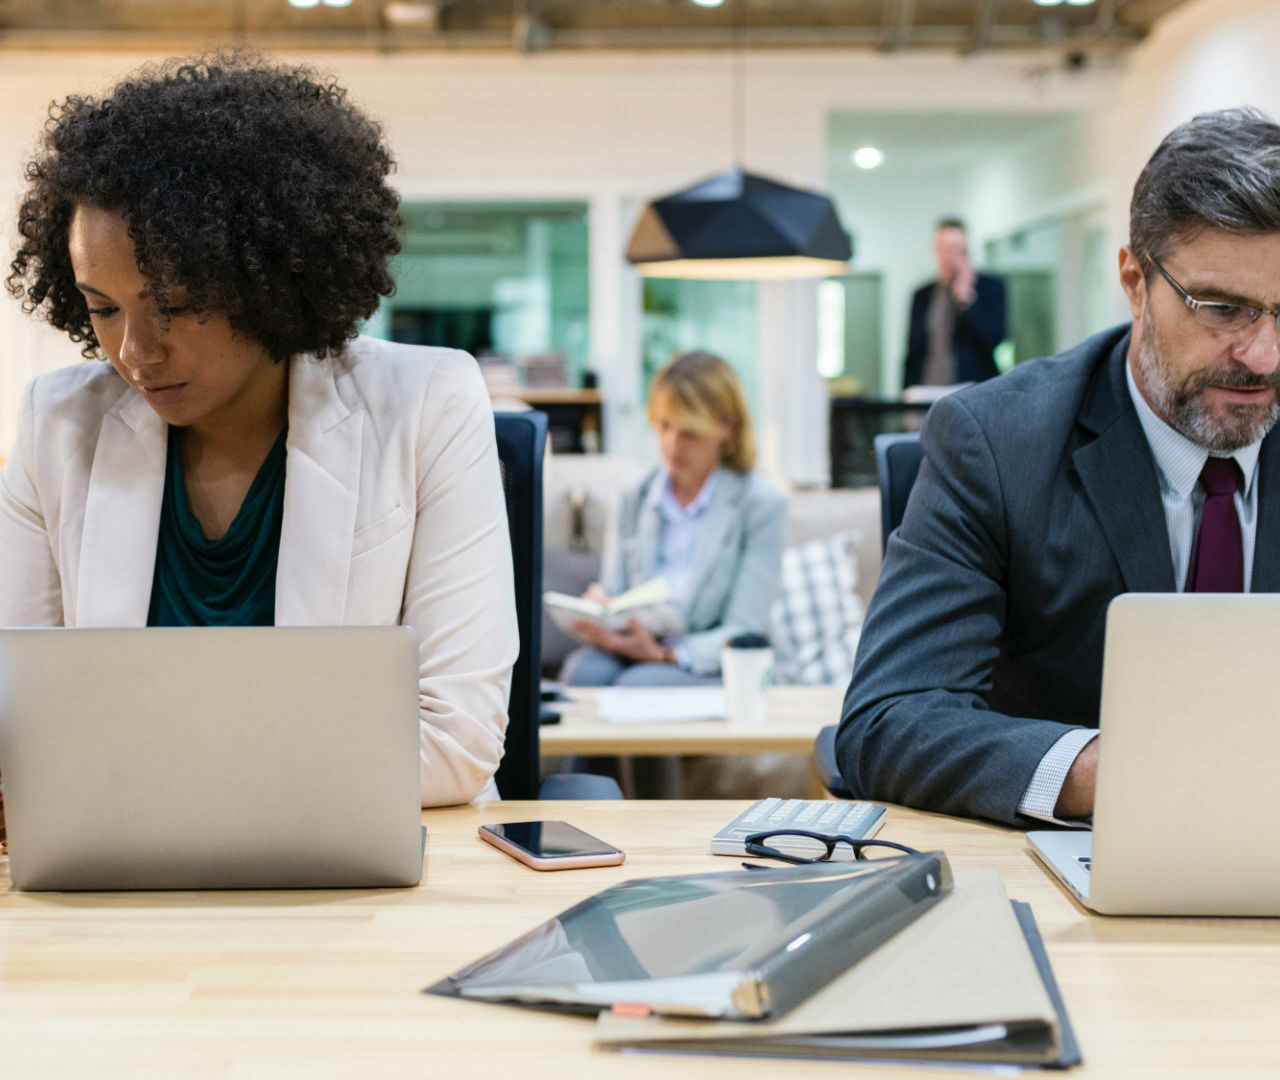 Working environment, not time of the year has most negative effect on staff wellbeing